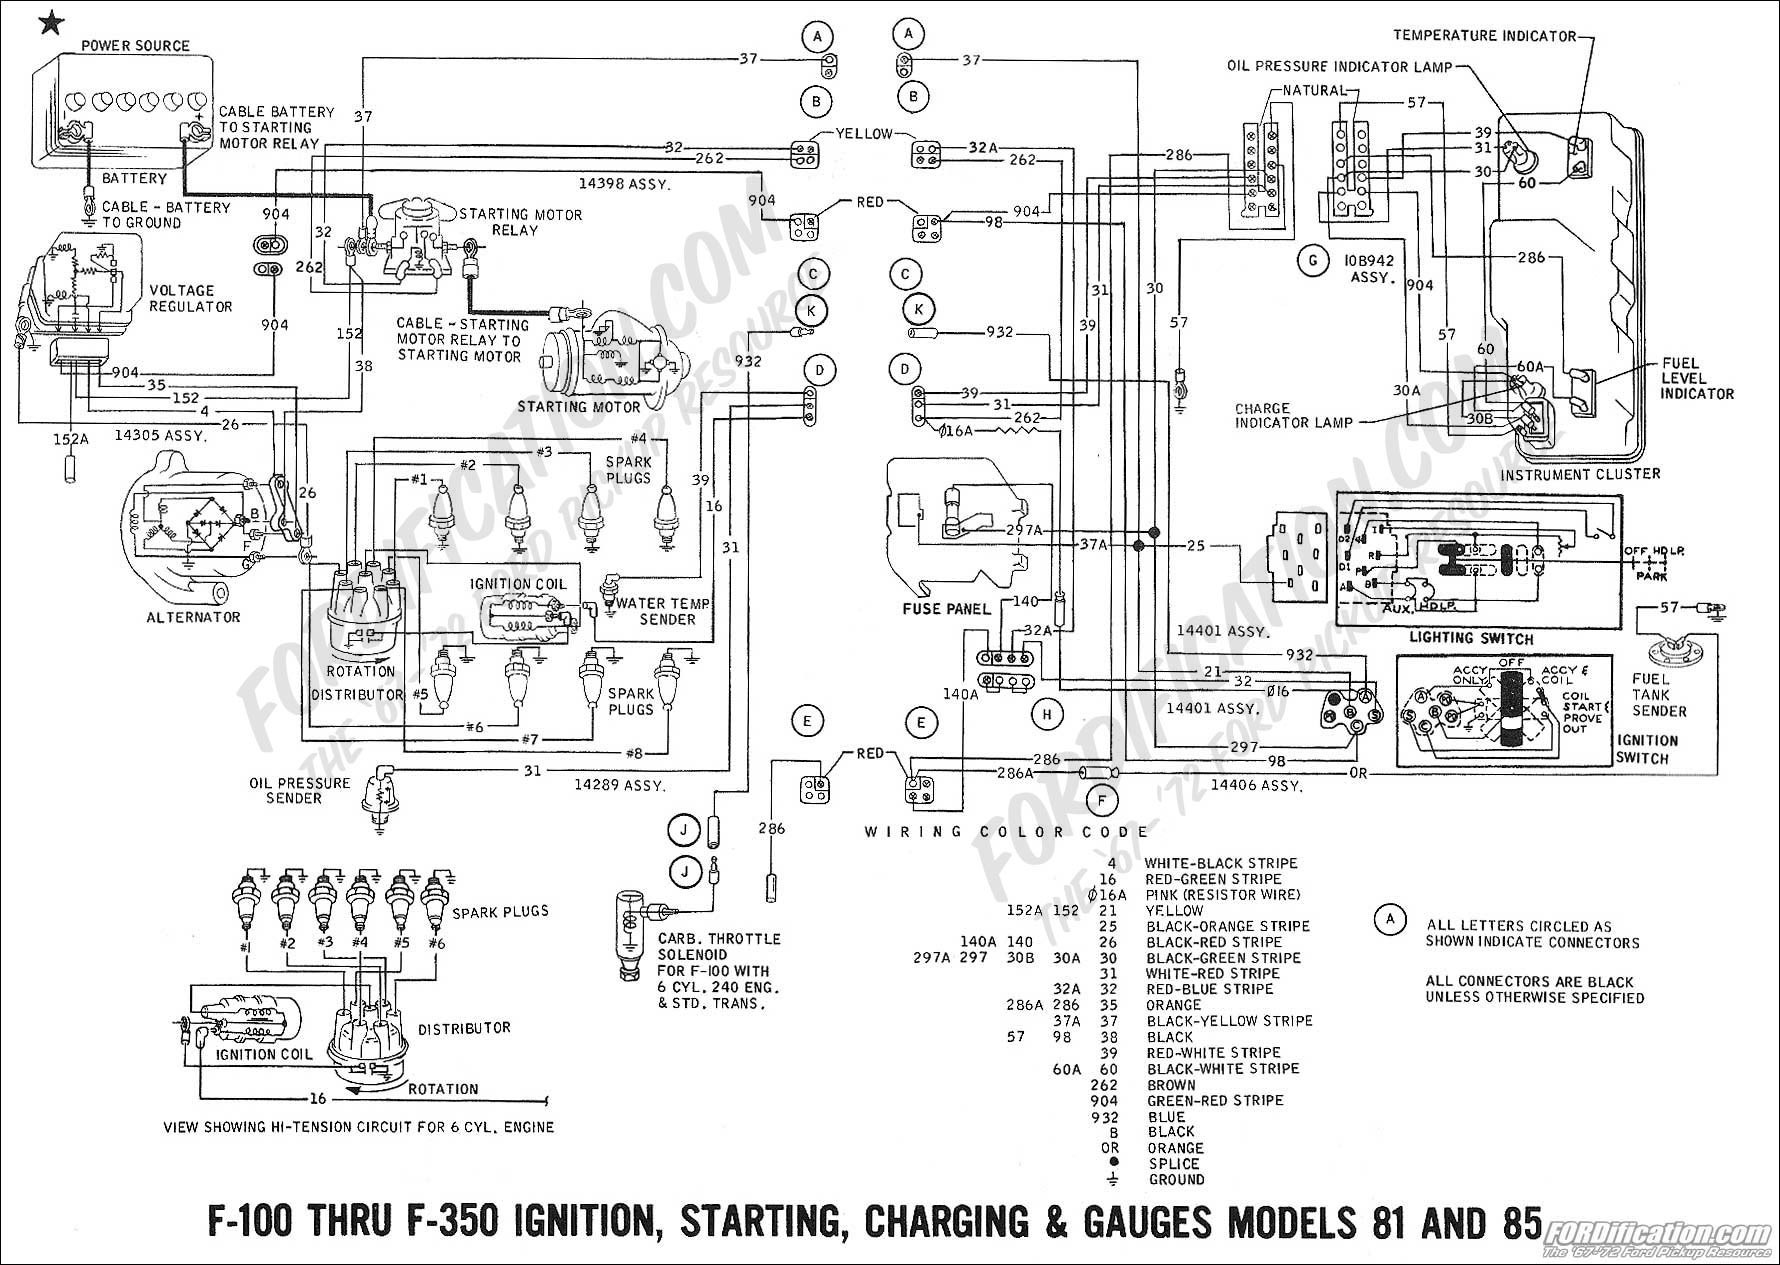 Ford Ignition Wiring Diagram 1979 F150 5 Post Switch Beautiful Truck Diagrams Free Of